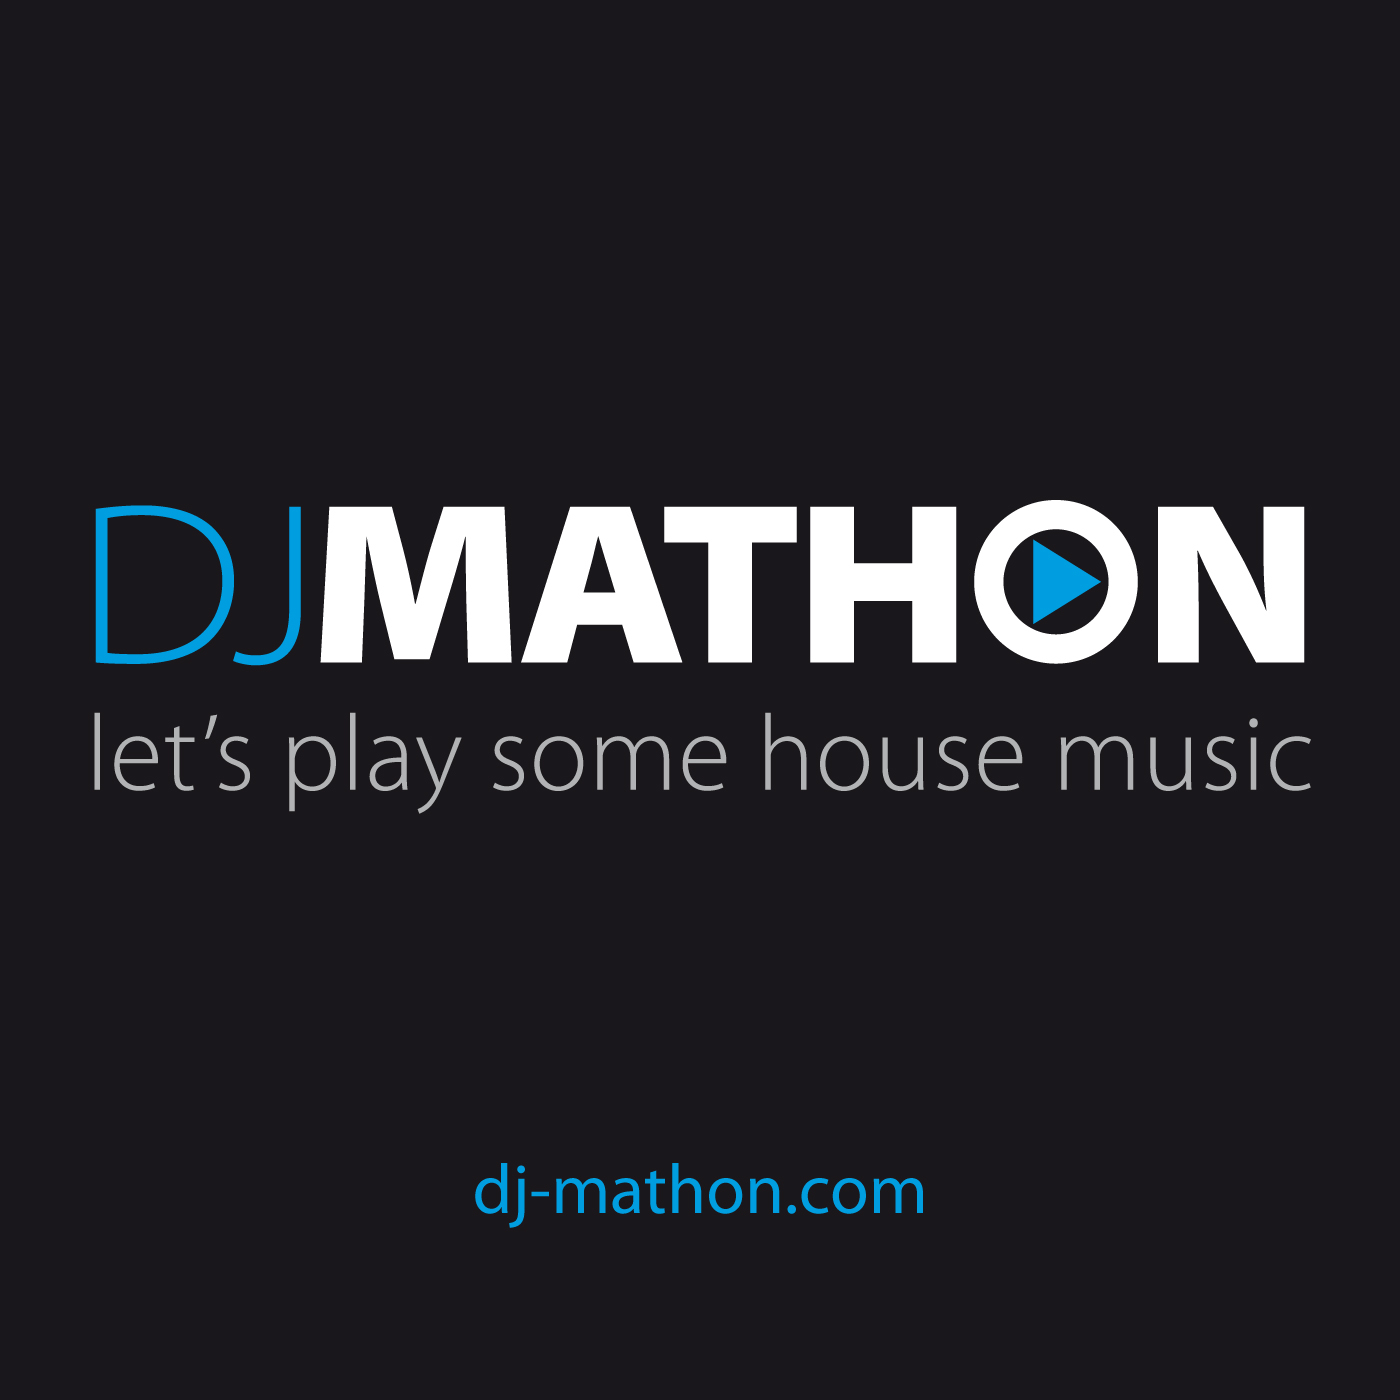 15 DJ MATHON SUMMER @ THE BEACH